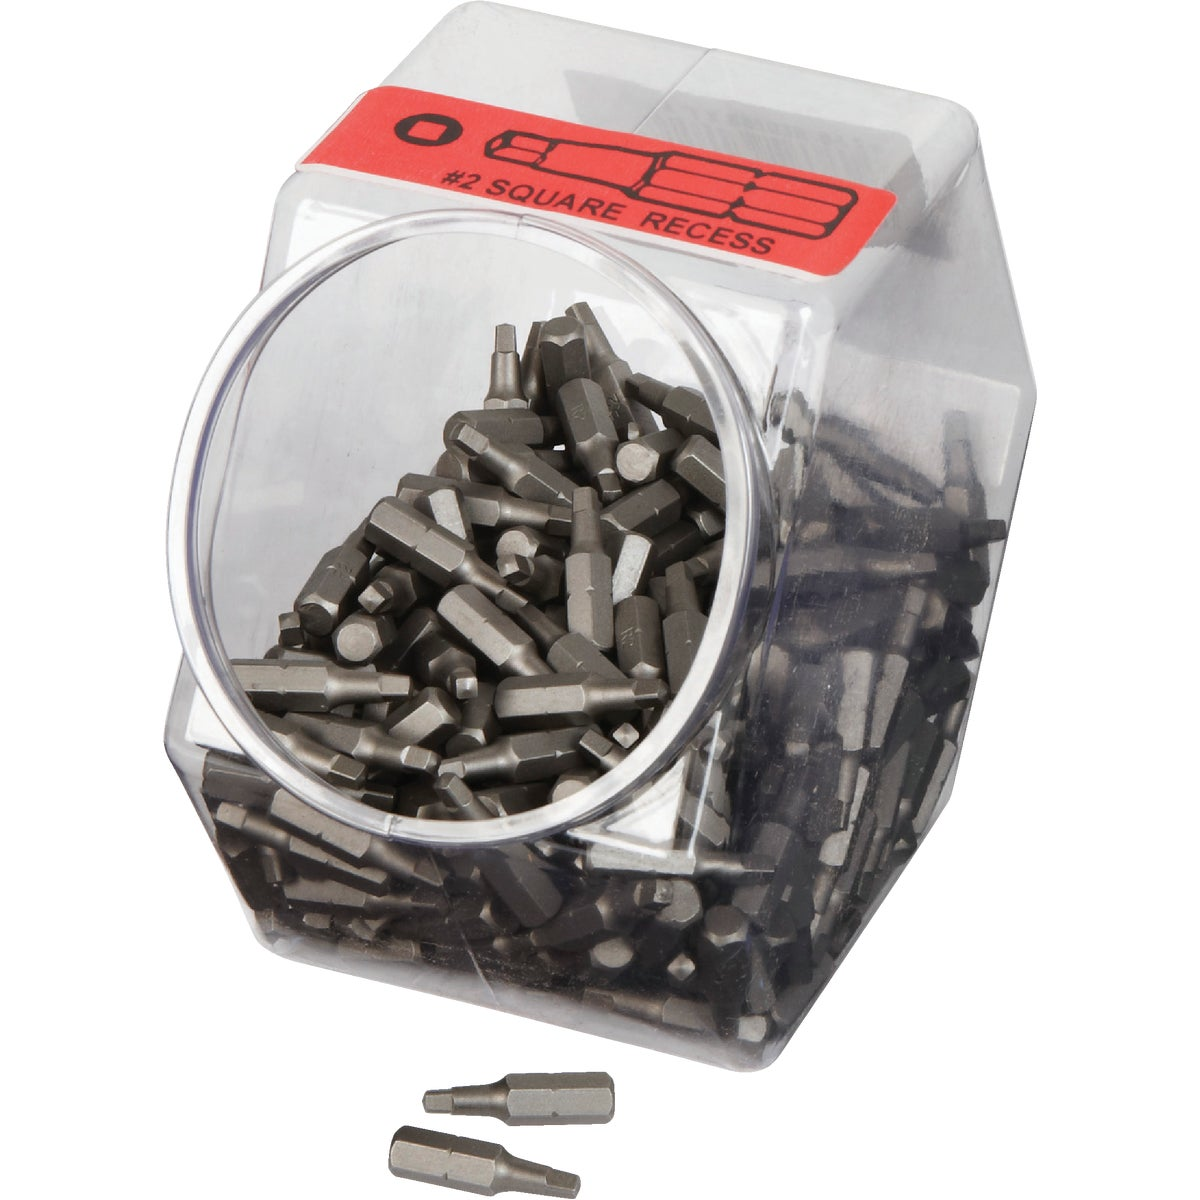 #2 SQ RECESS SCREW BITS - 84051 by Bwt Inc